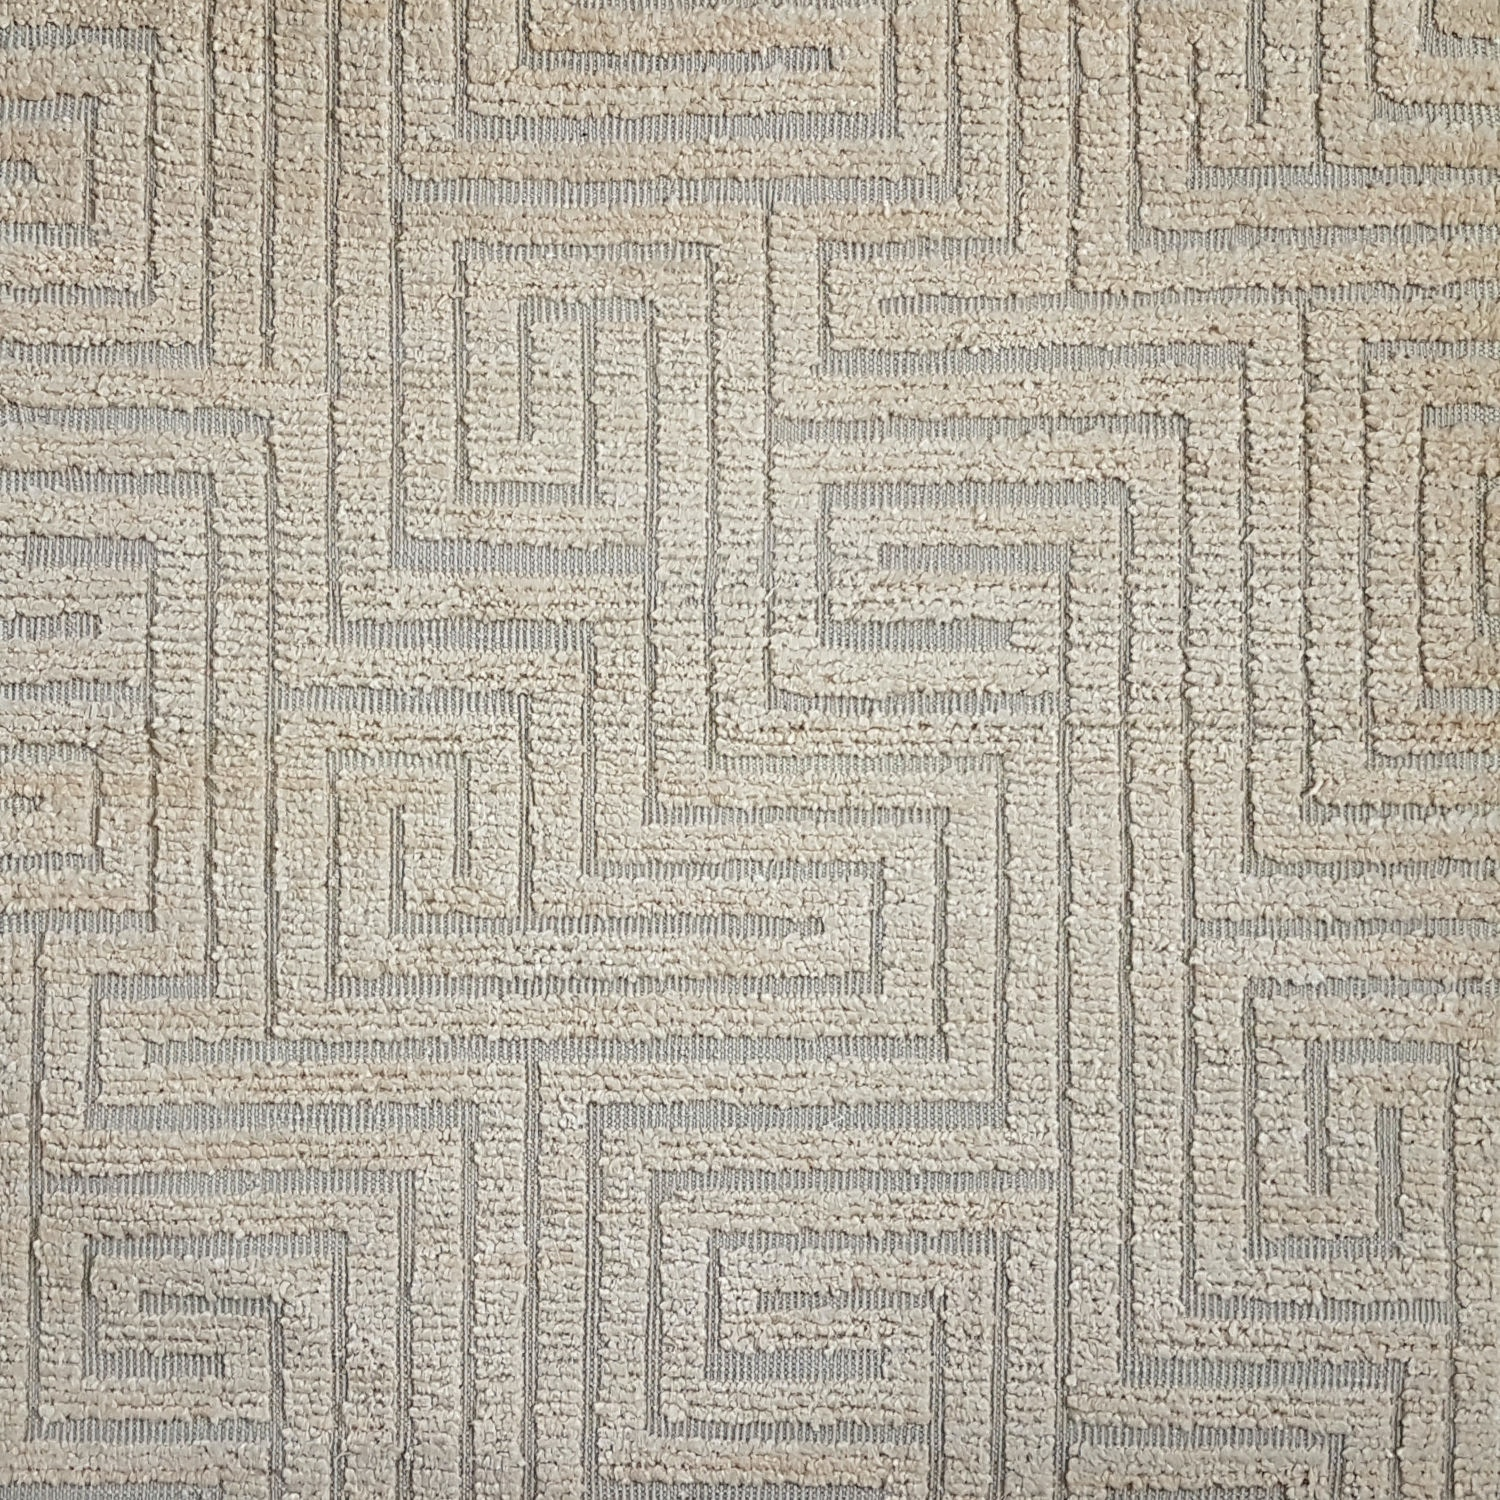 Brunschwig Carpet V16-6/Sp.Light Blue/Cream CB-102513.LIGHT BLUE/CREAM.0